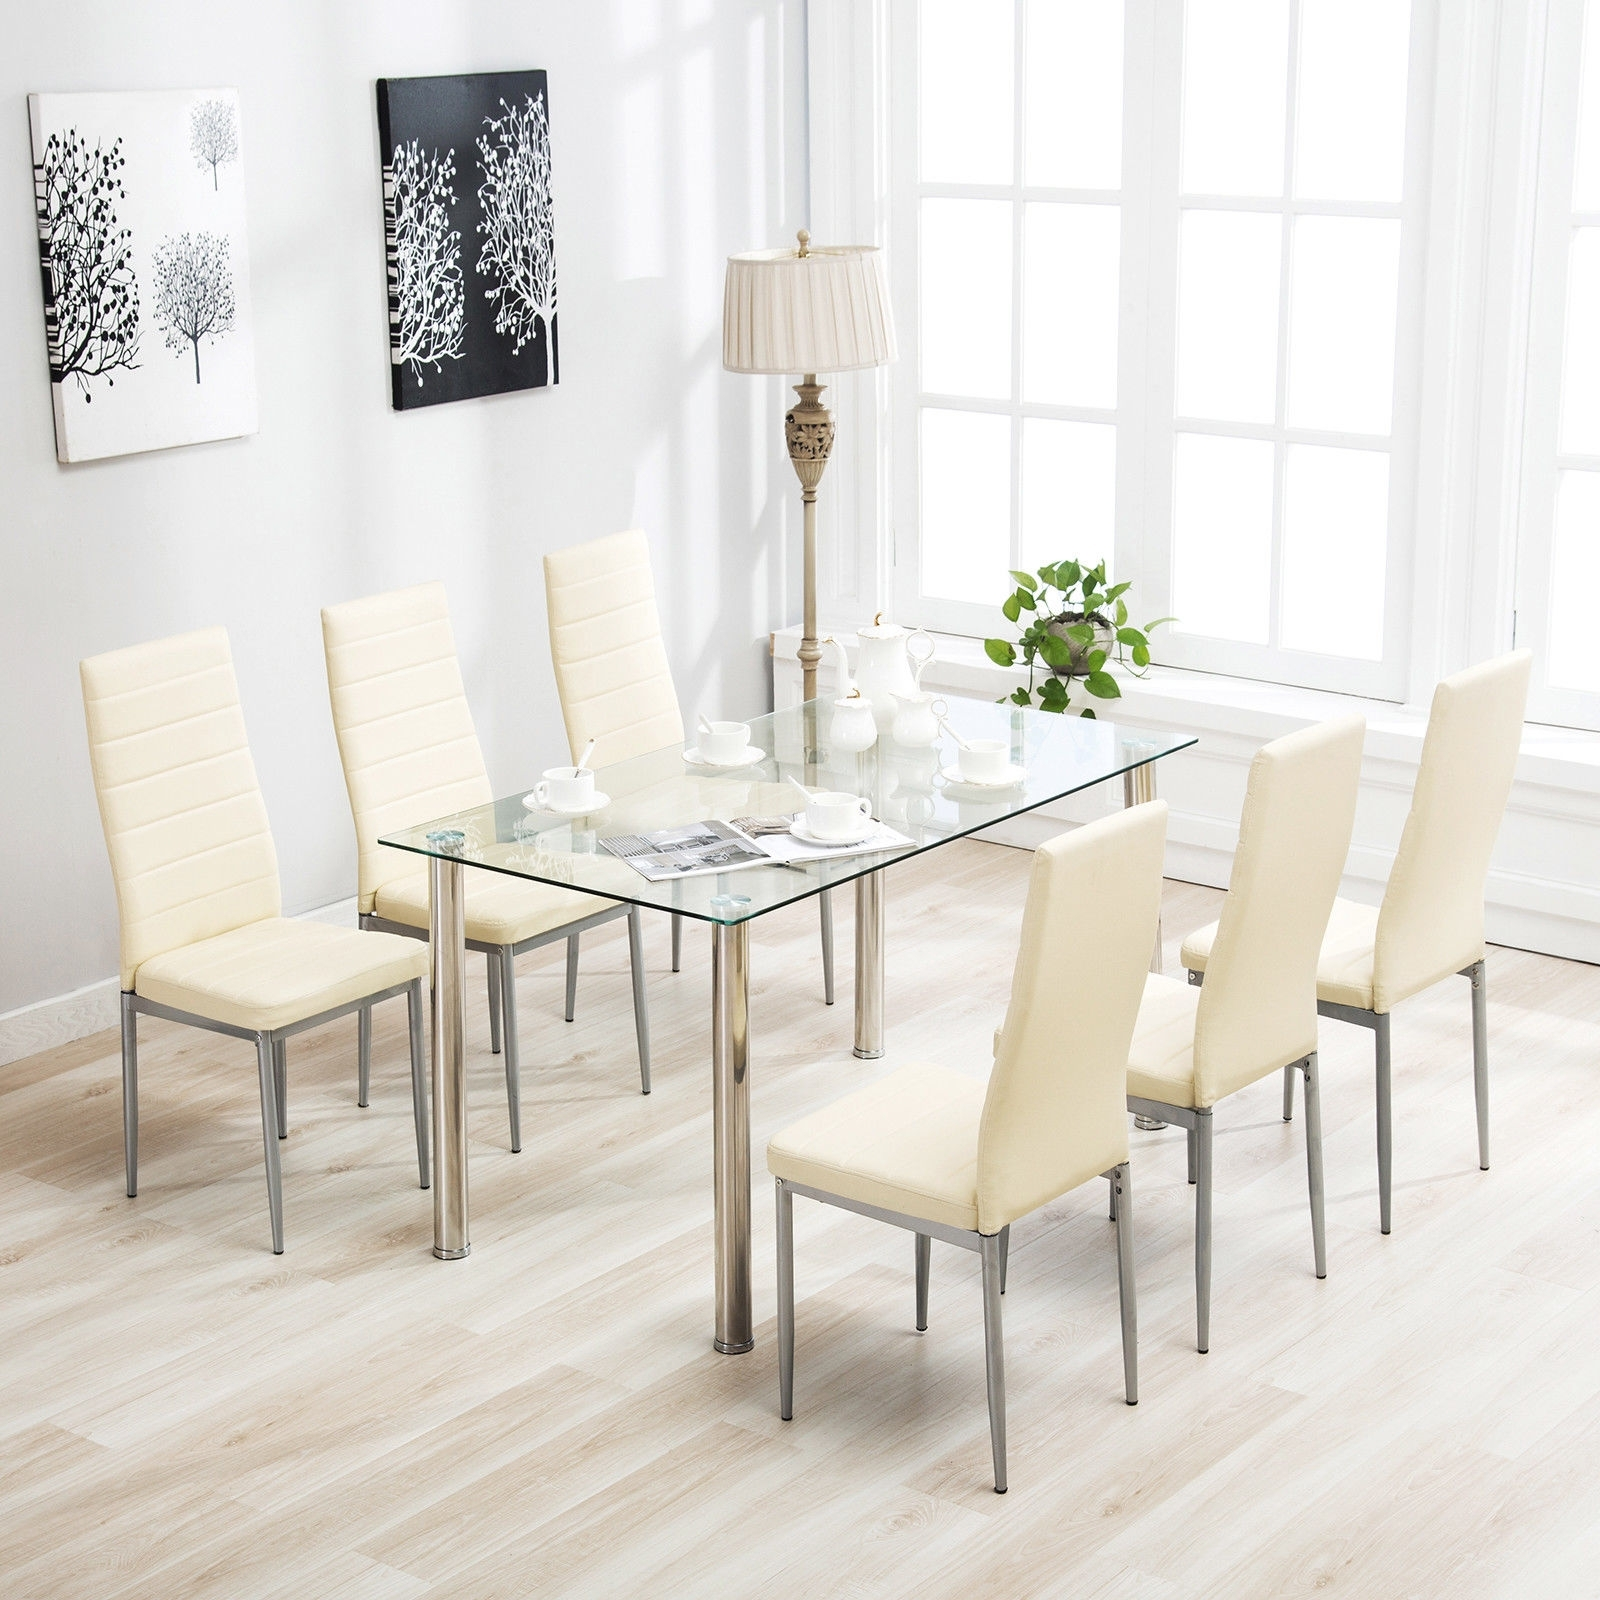 Trendy Black Glass Dining Tables And 6 Chairs Pertaining To 7 Piece Dining Table Set For 6 Chairs Clear Glass Metal Kitchen Room Breakfast • $1, (View 16 of 25)